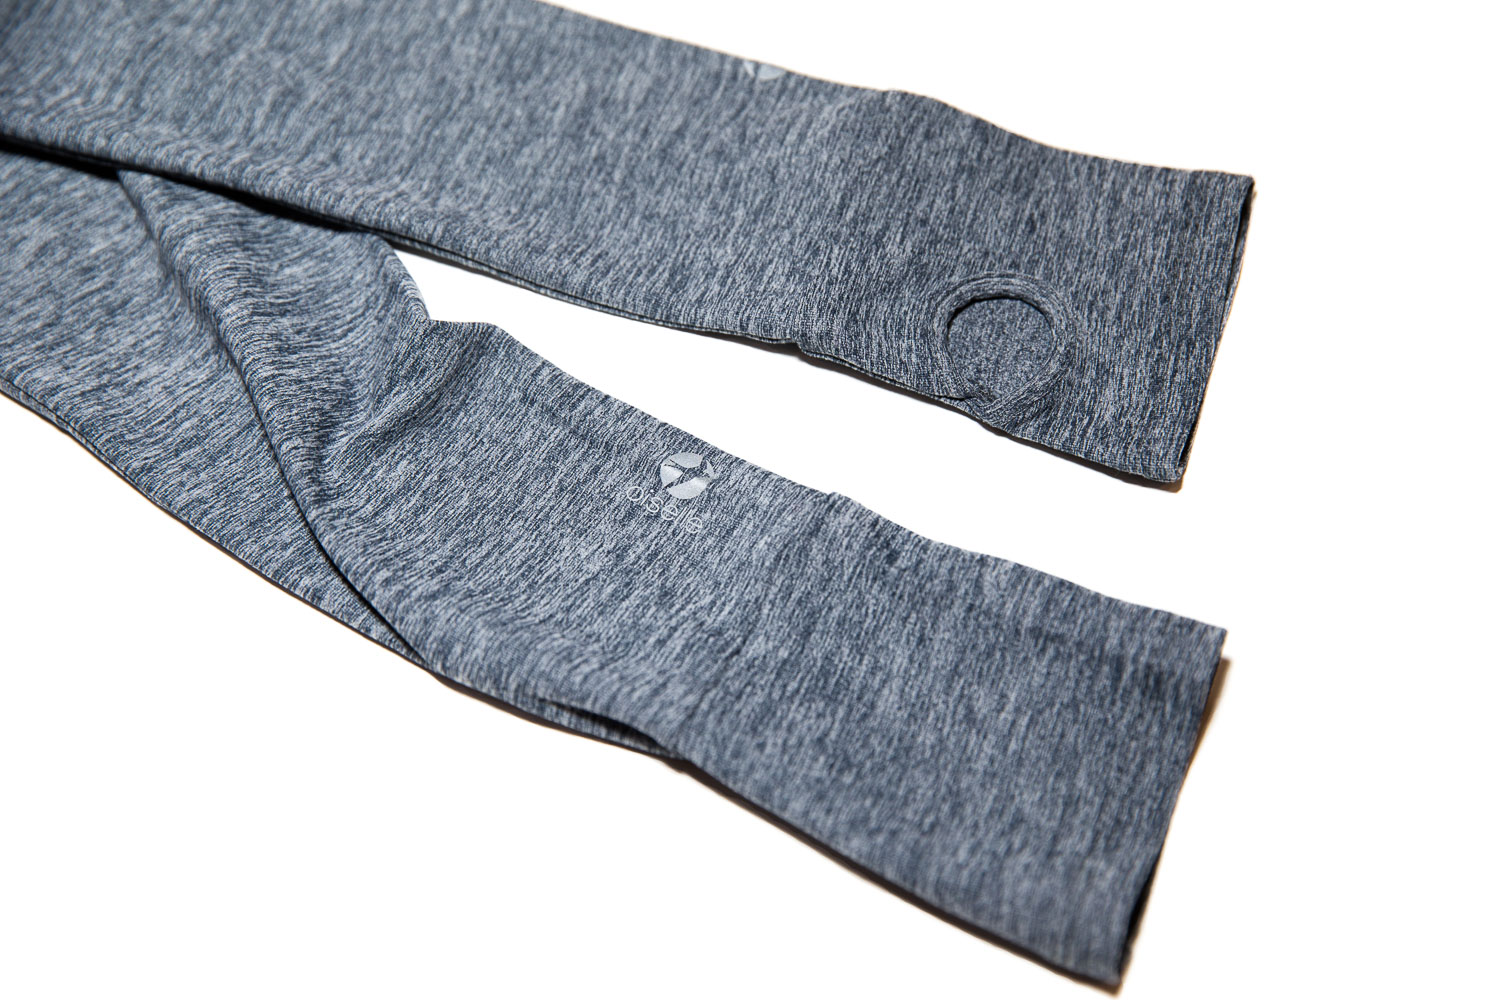 Oiselle arm warmers